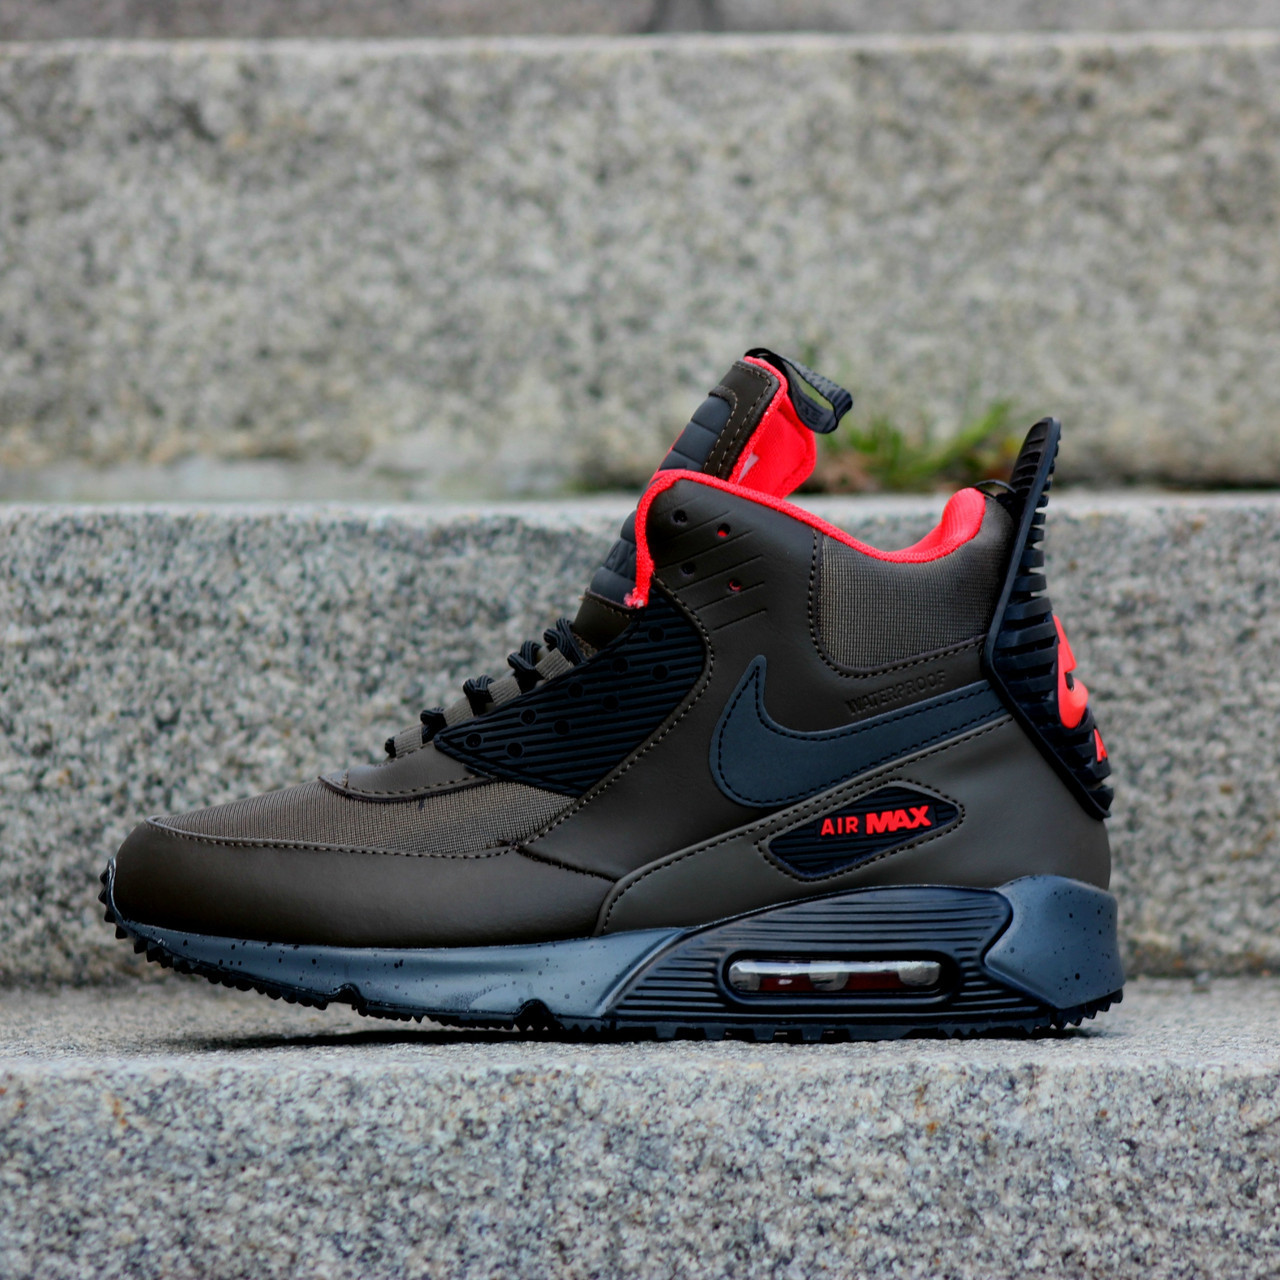 6494004a50 low price nike air max 90 sneakerboot 39 0ac0d 7e413